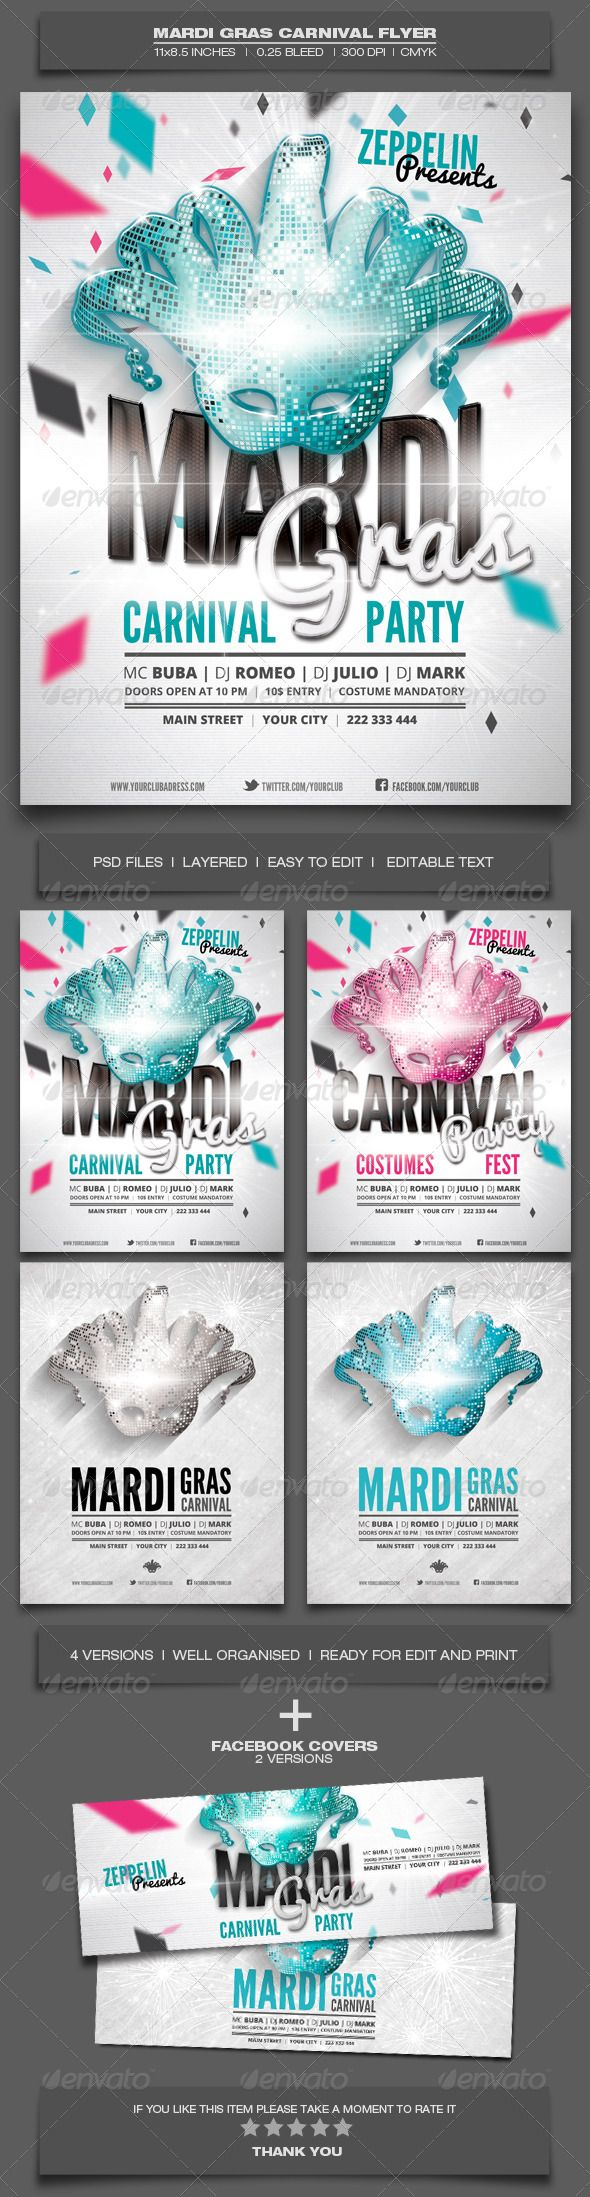 Carnival Flyer Template Photoshop - CreativeFlyers